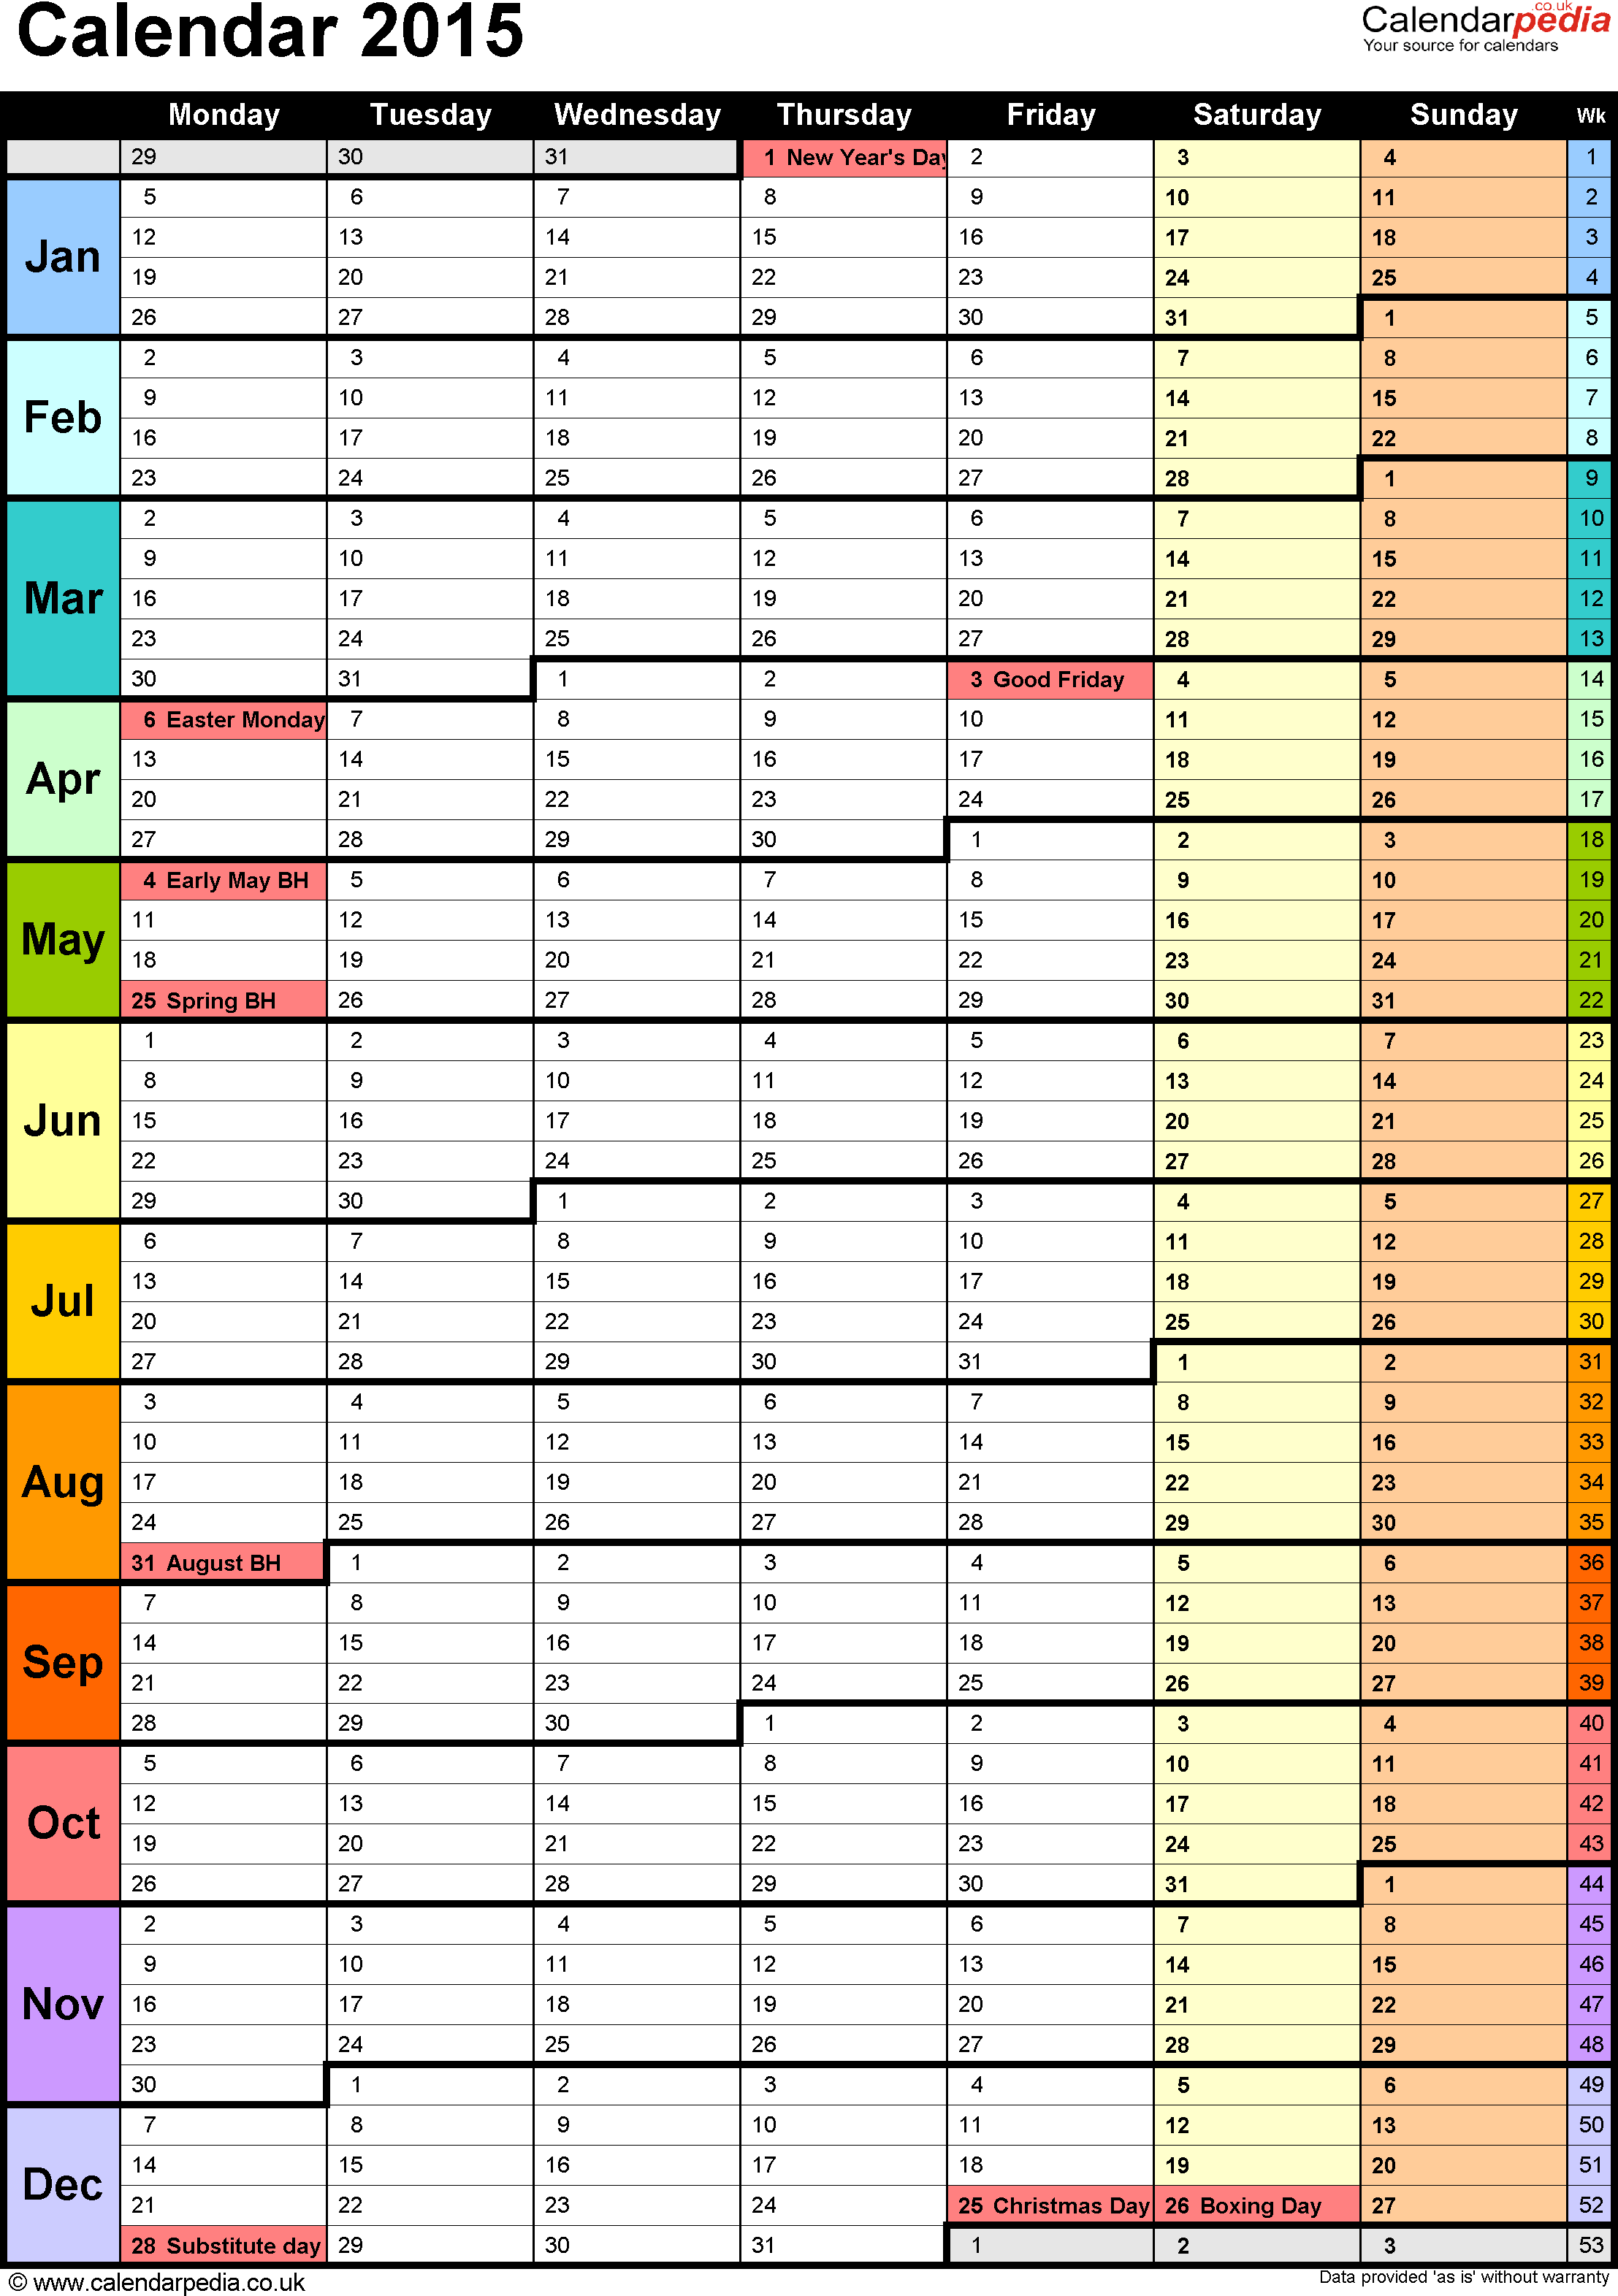 Template 15: Yearly calendar 2015 as Excel template, portrait orientation, 1 page, with UK bank holidays and week numbers, days in continuous flow/rolling layout